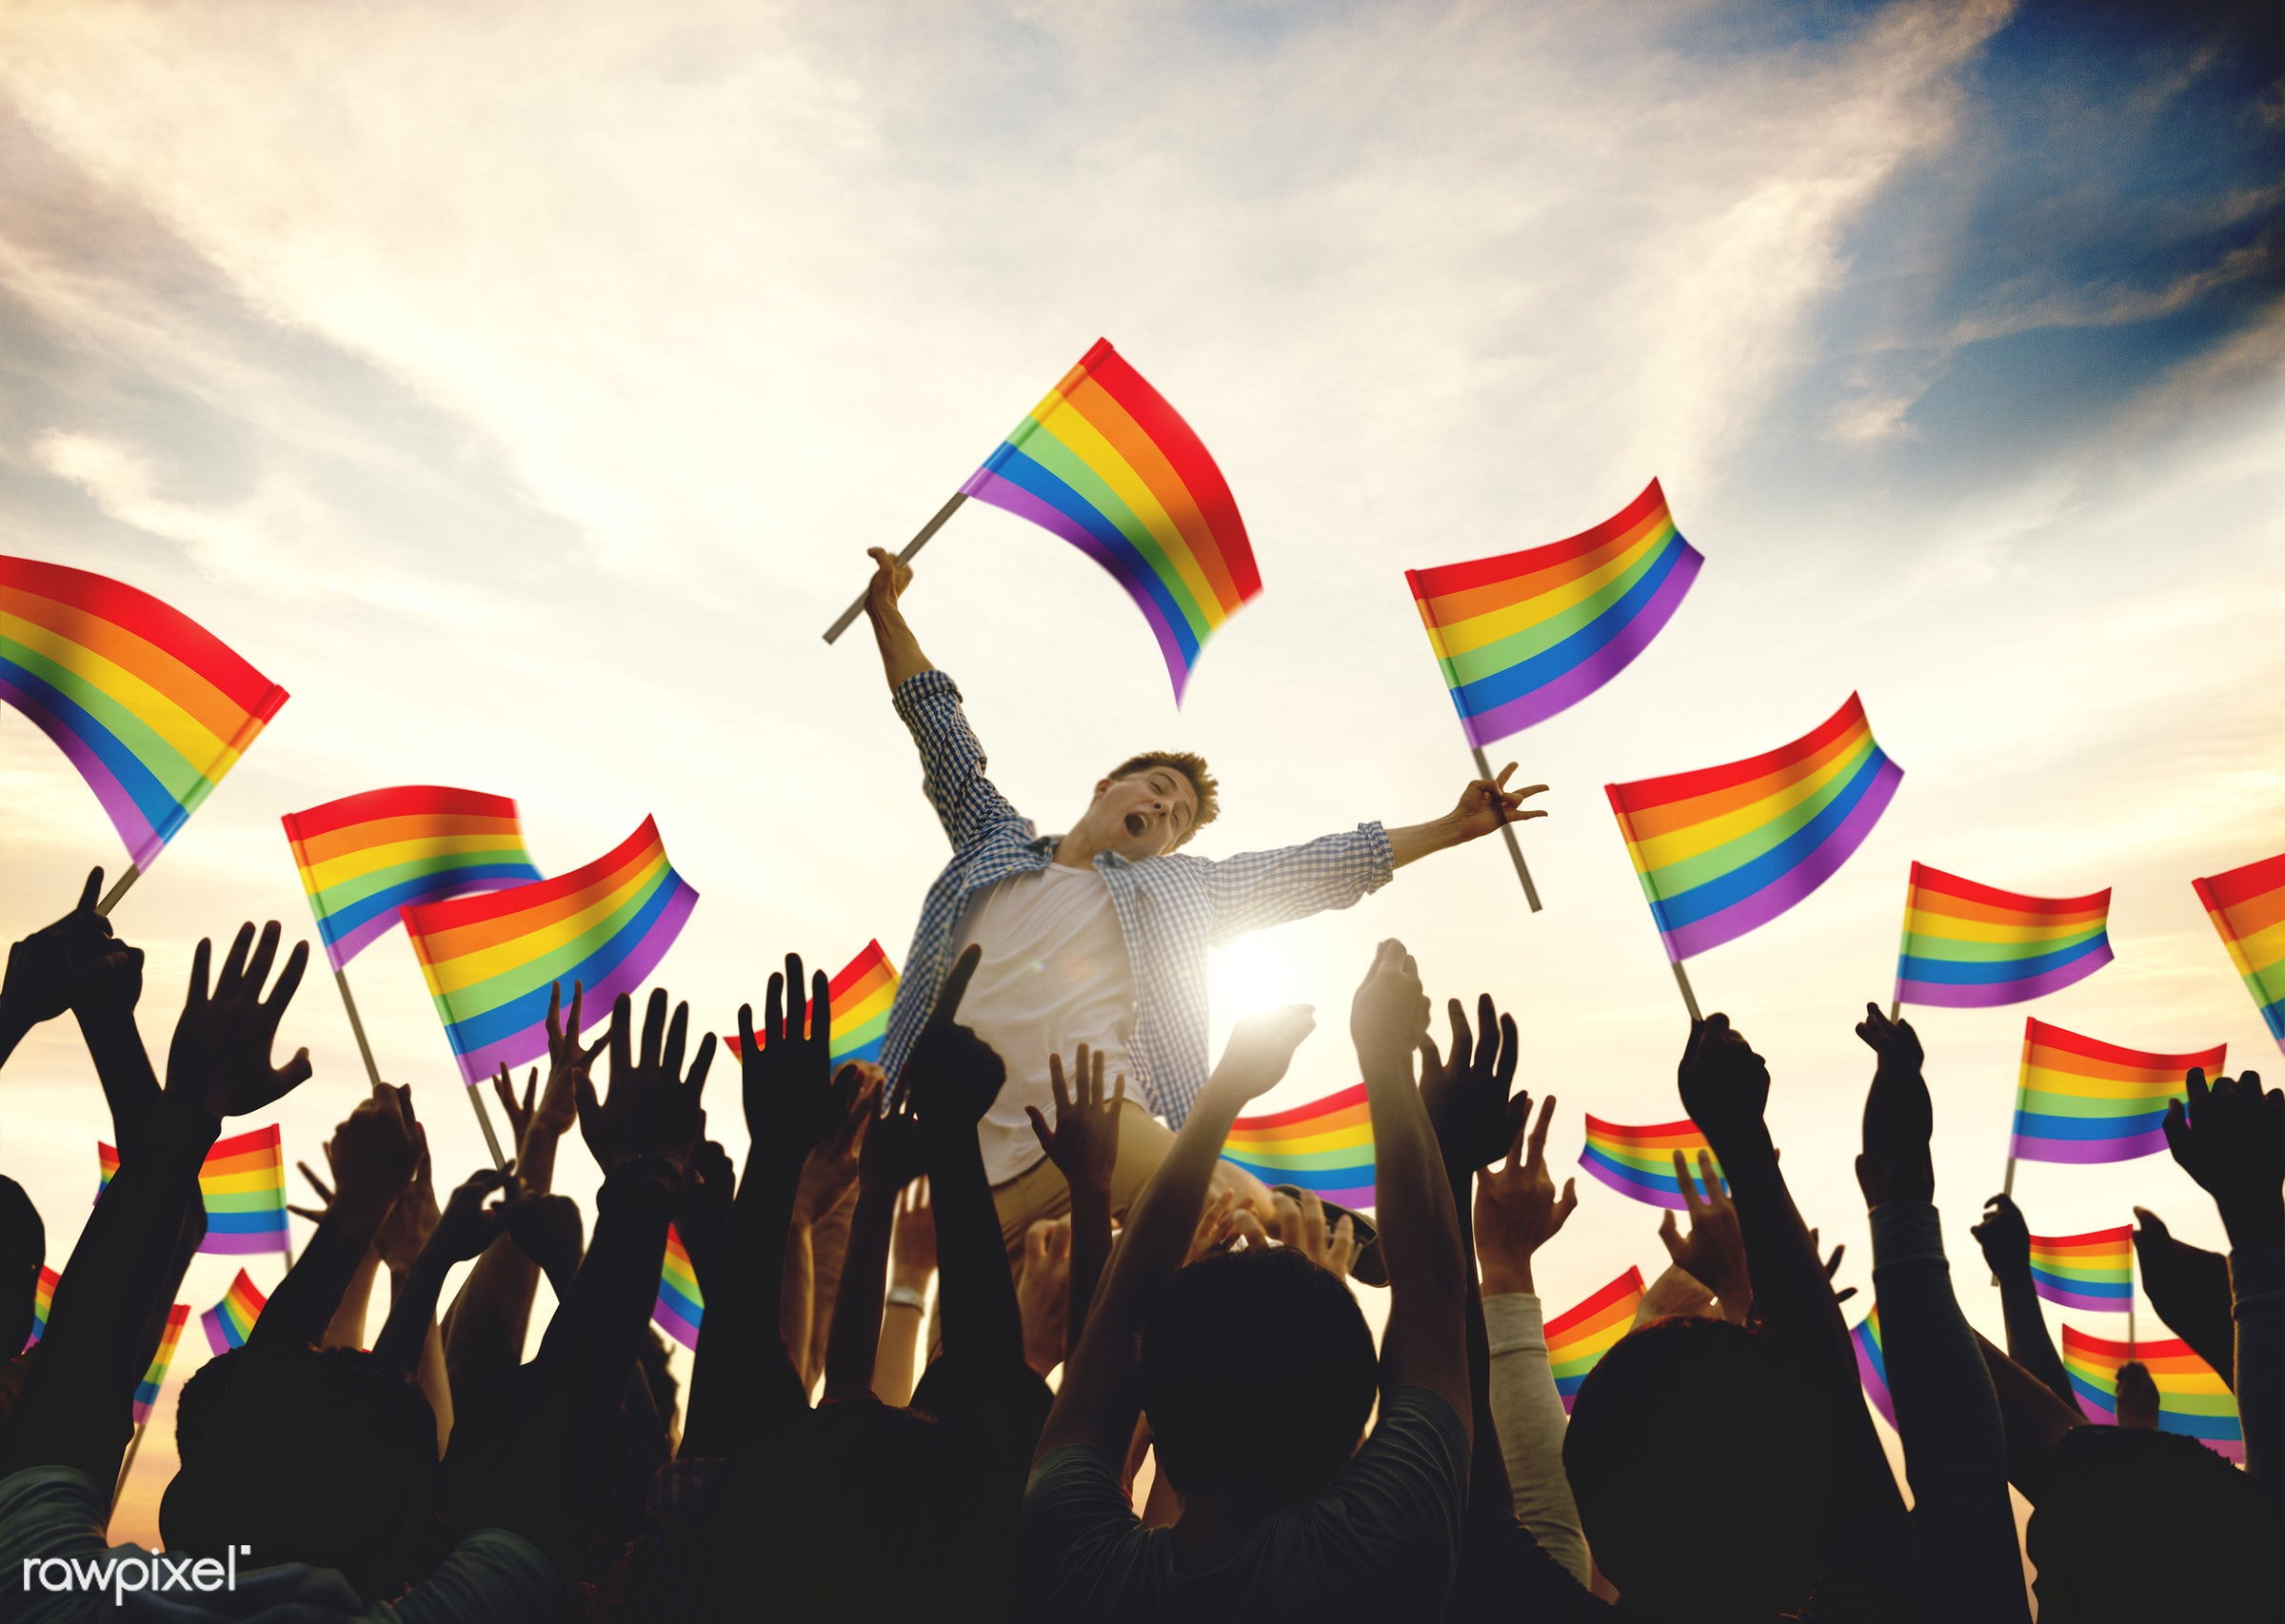 gay, pride, adult, arm raised, audience, back lit, celebration, cheerful, community, couple, crowd, culture, ecstatic,...